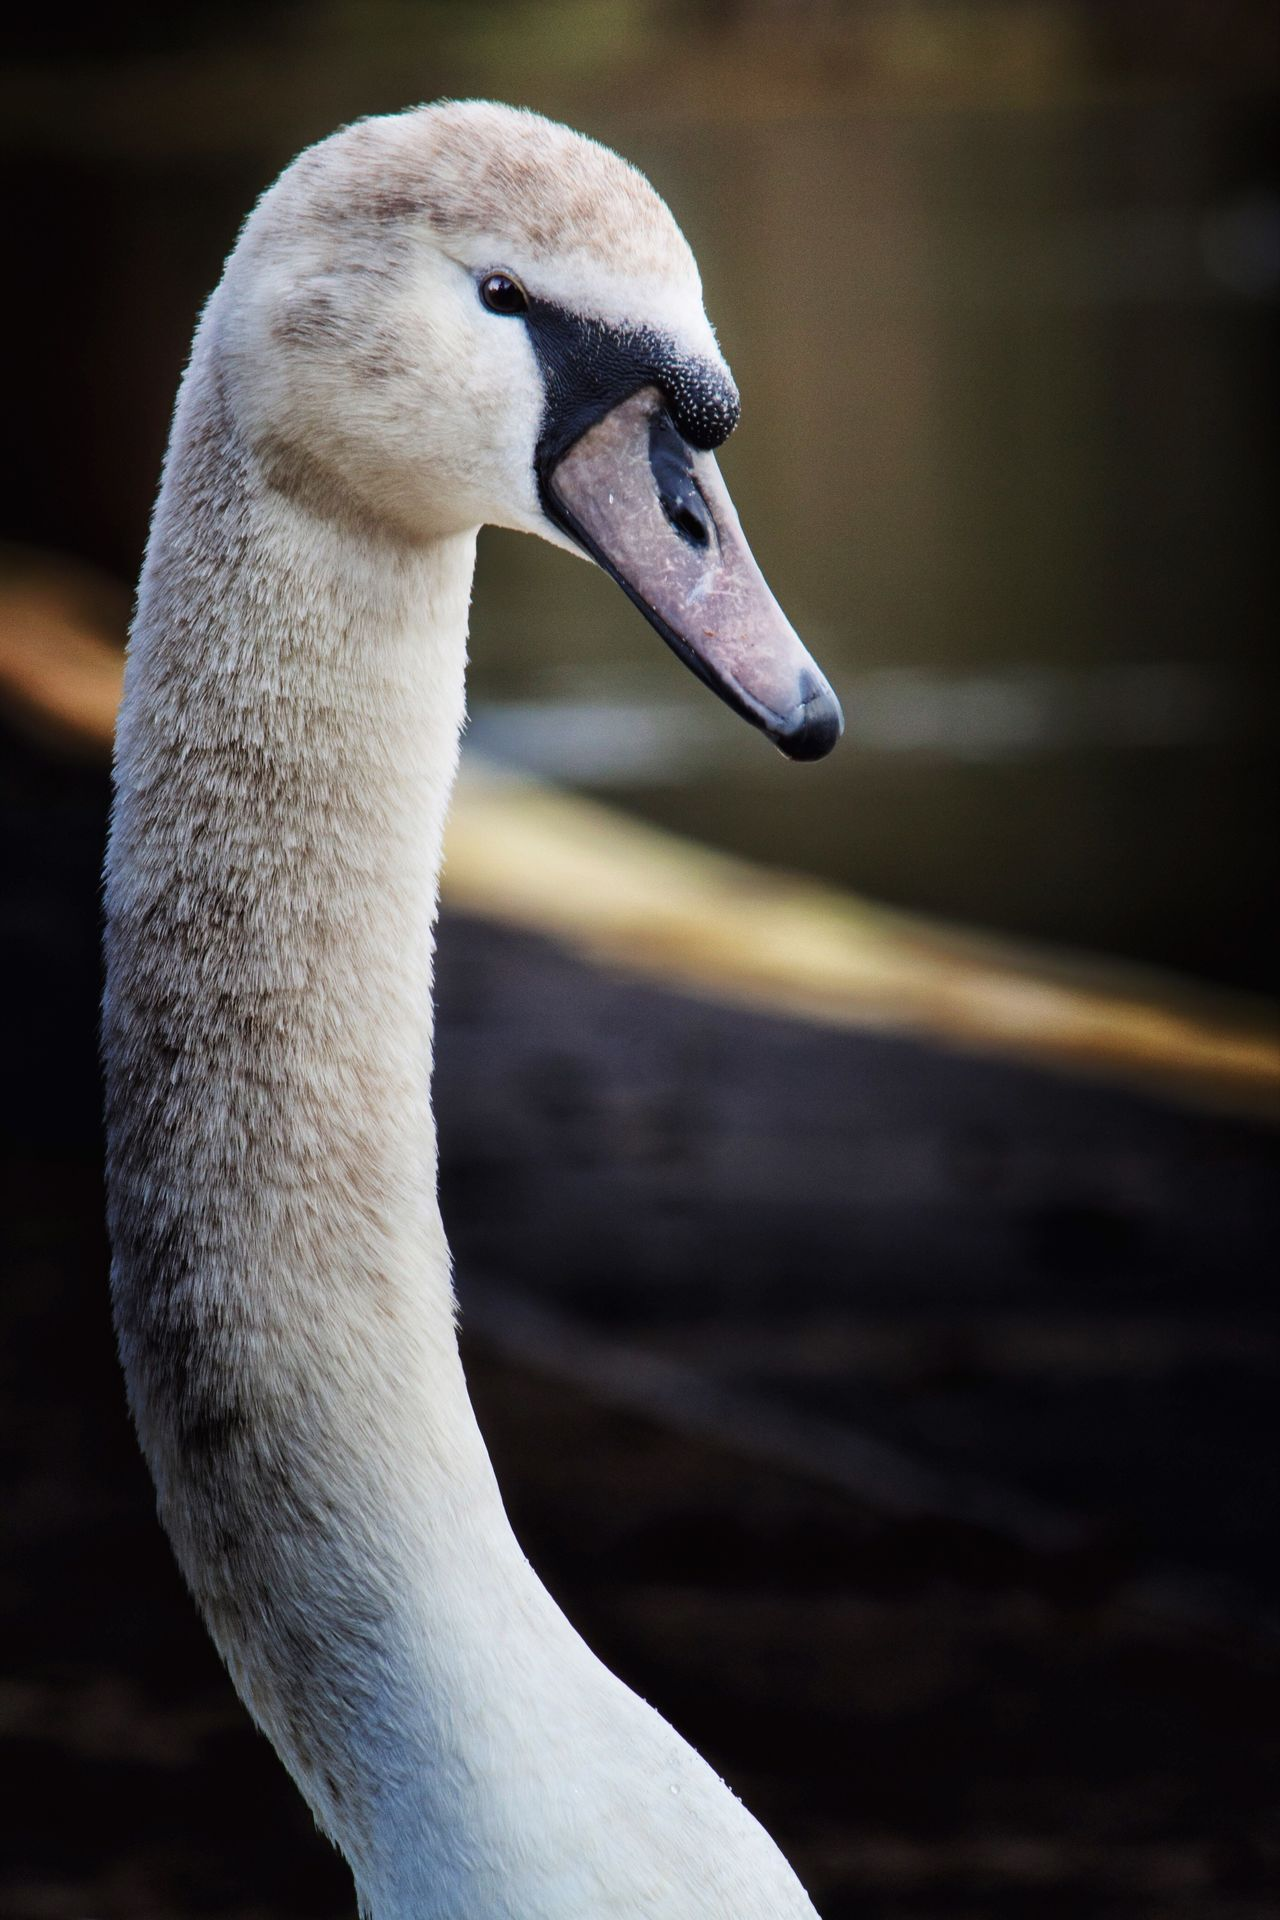 Swan Bird One Animal Close-up Beak Animal Themes Focus On Foreground Water Bird Nature No People Animals In The Wild Day Outdoors Canon700D Canonphotography Swans Neck Hello World Long Neck  White Bird